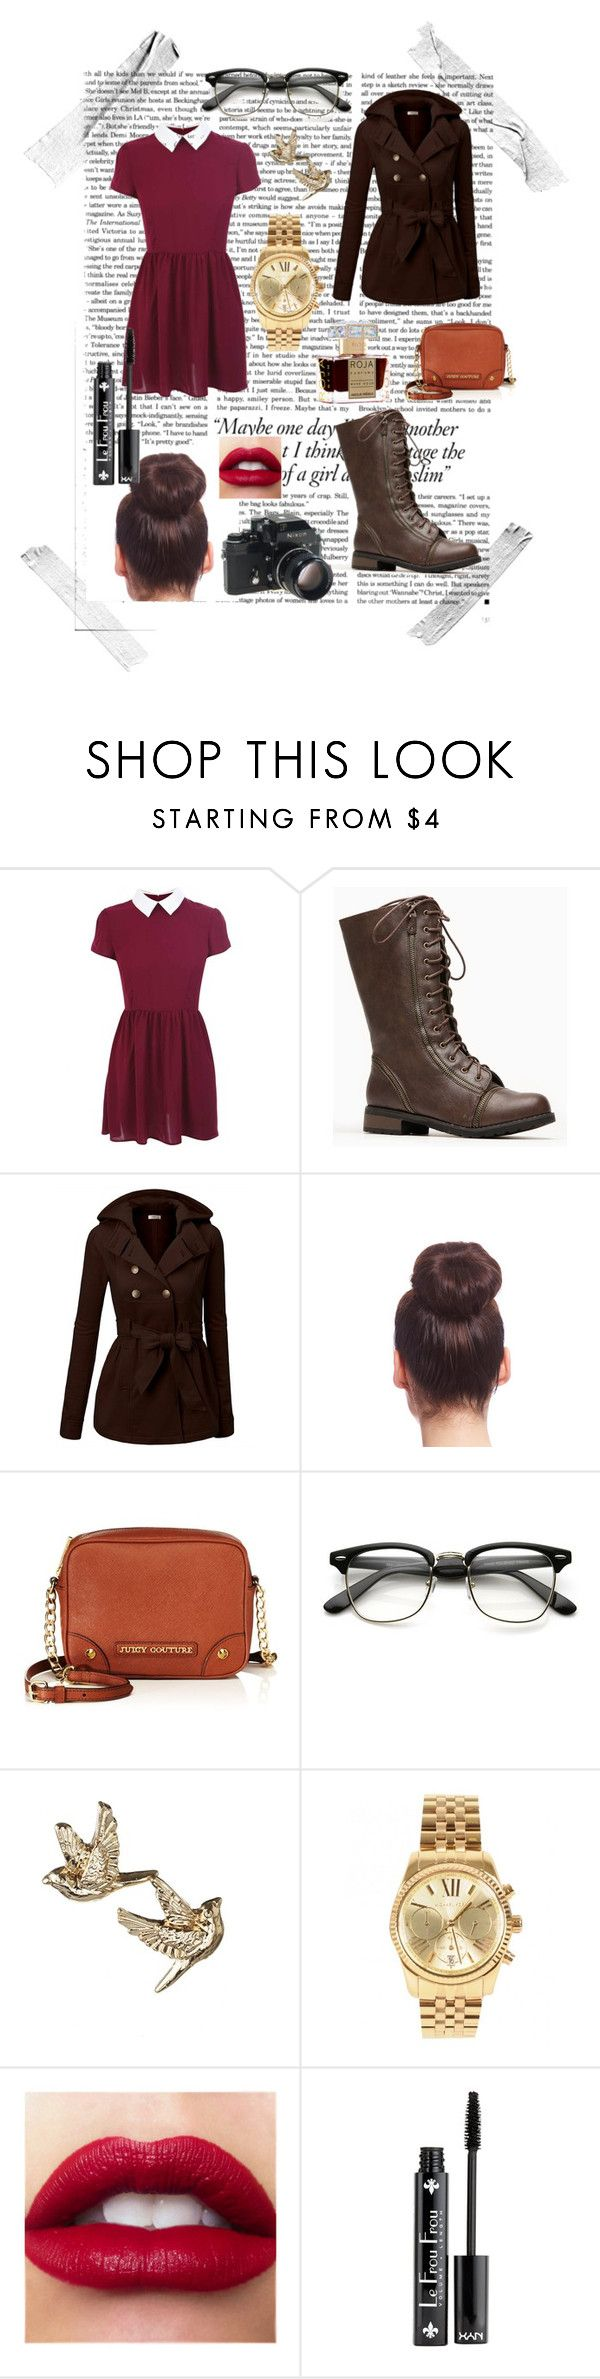 """""""Got Any News?"""" by gingy333 ❤ liked on Polyvore featuring Victoria Beckham, J.TOMSON, 2b bebe, Juicy Couture, Nikon, Michael Kors, NYX and Roja Parfums"""